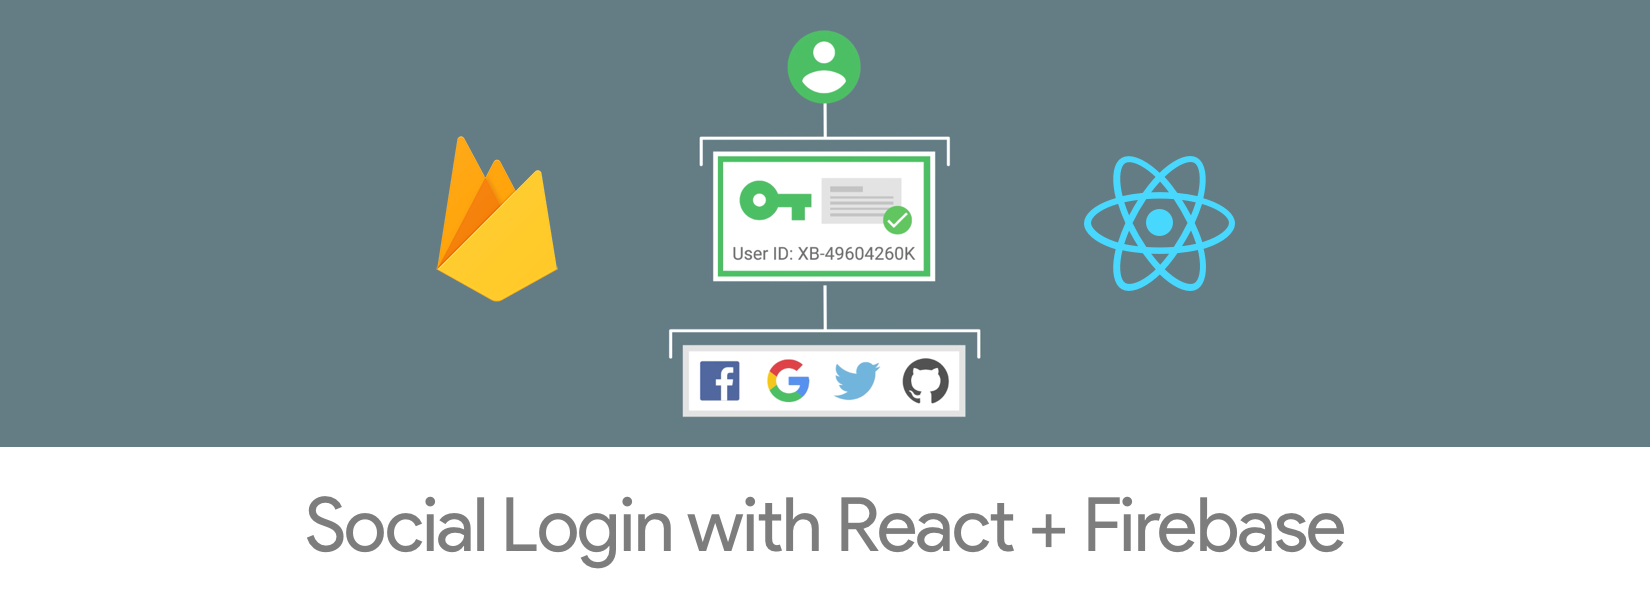 Firebase Social Login With React Native